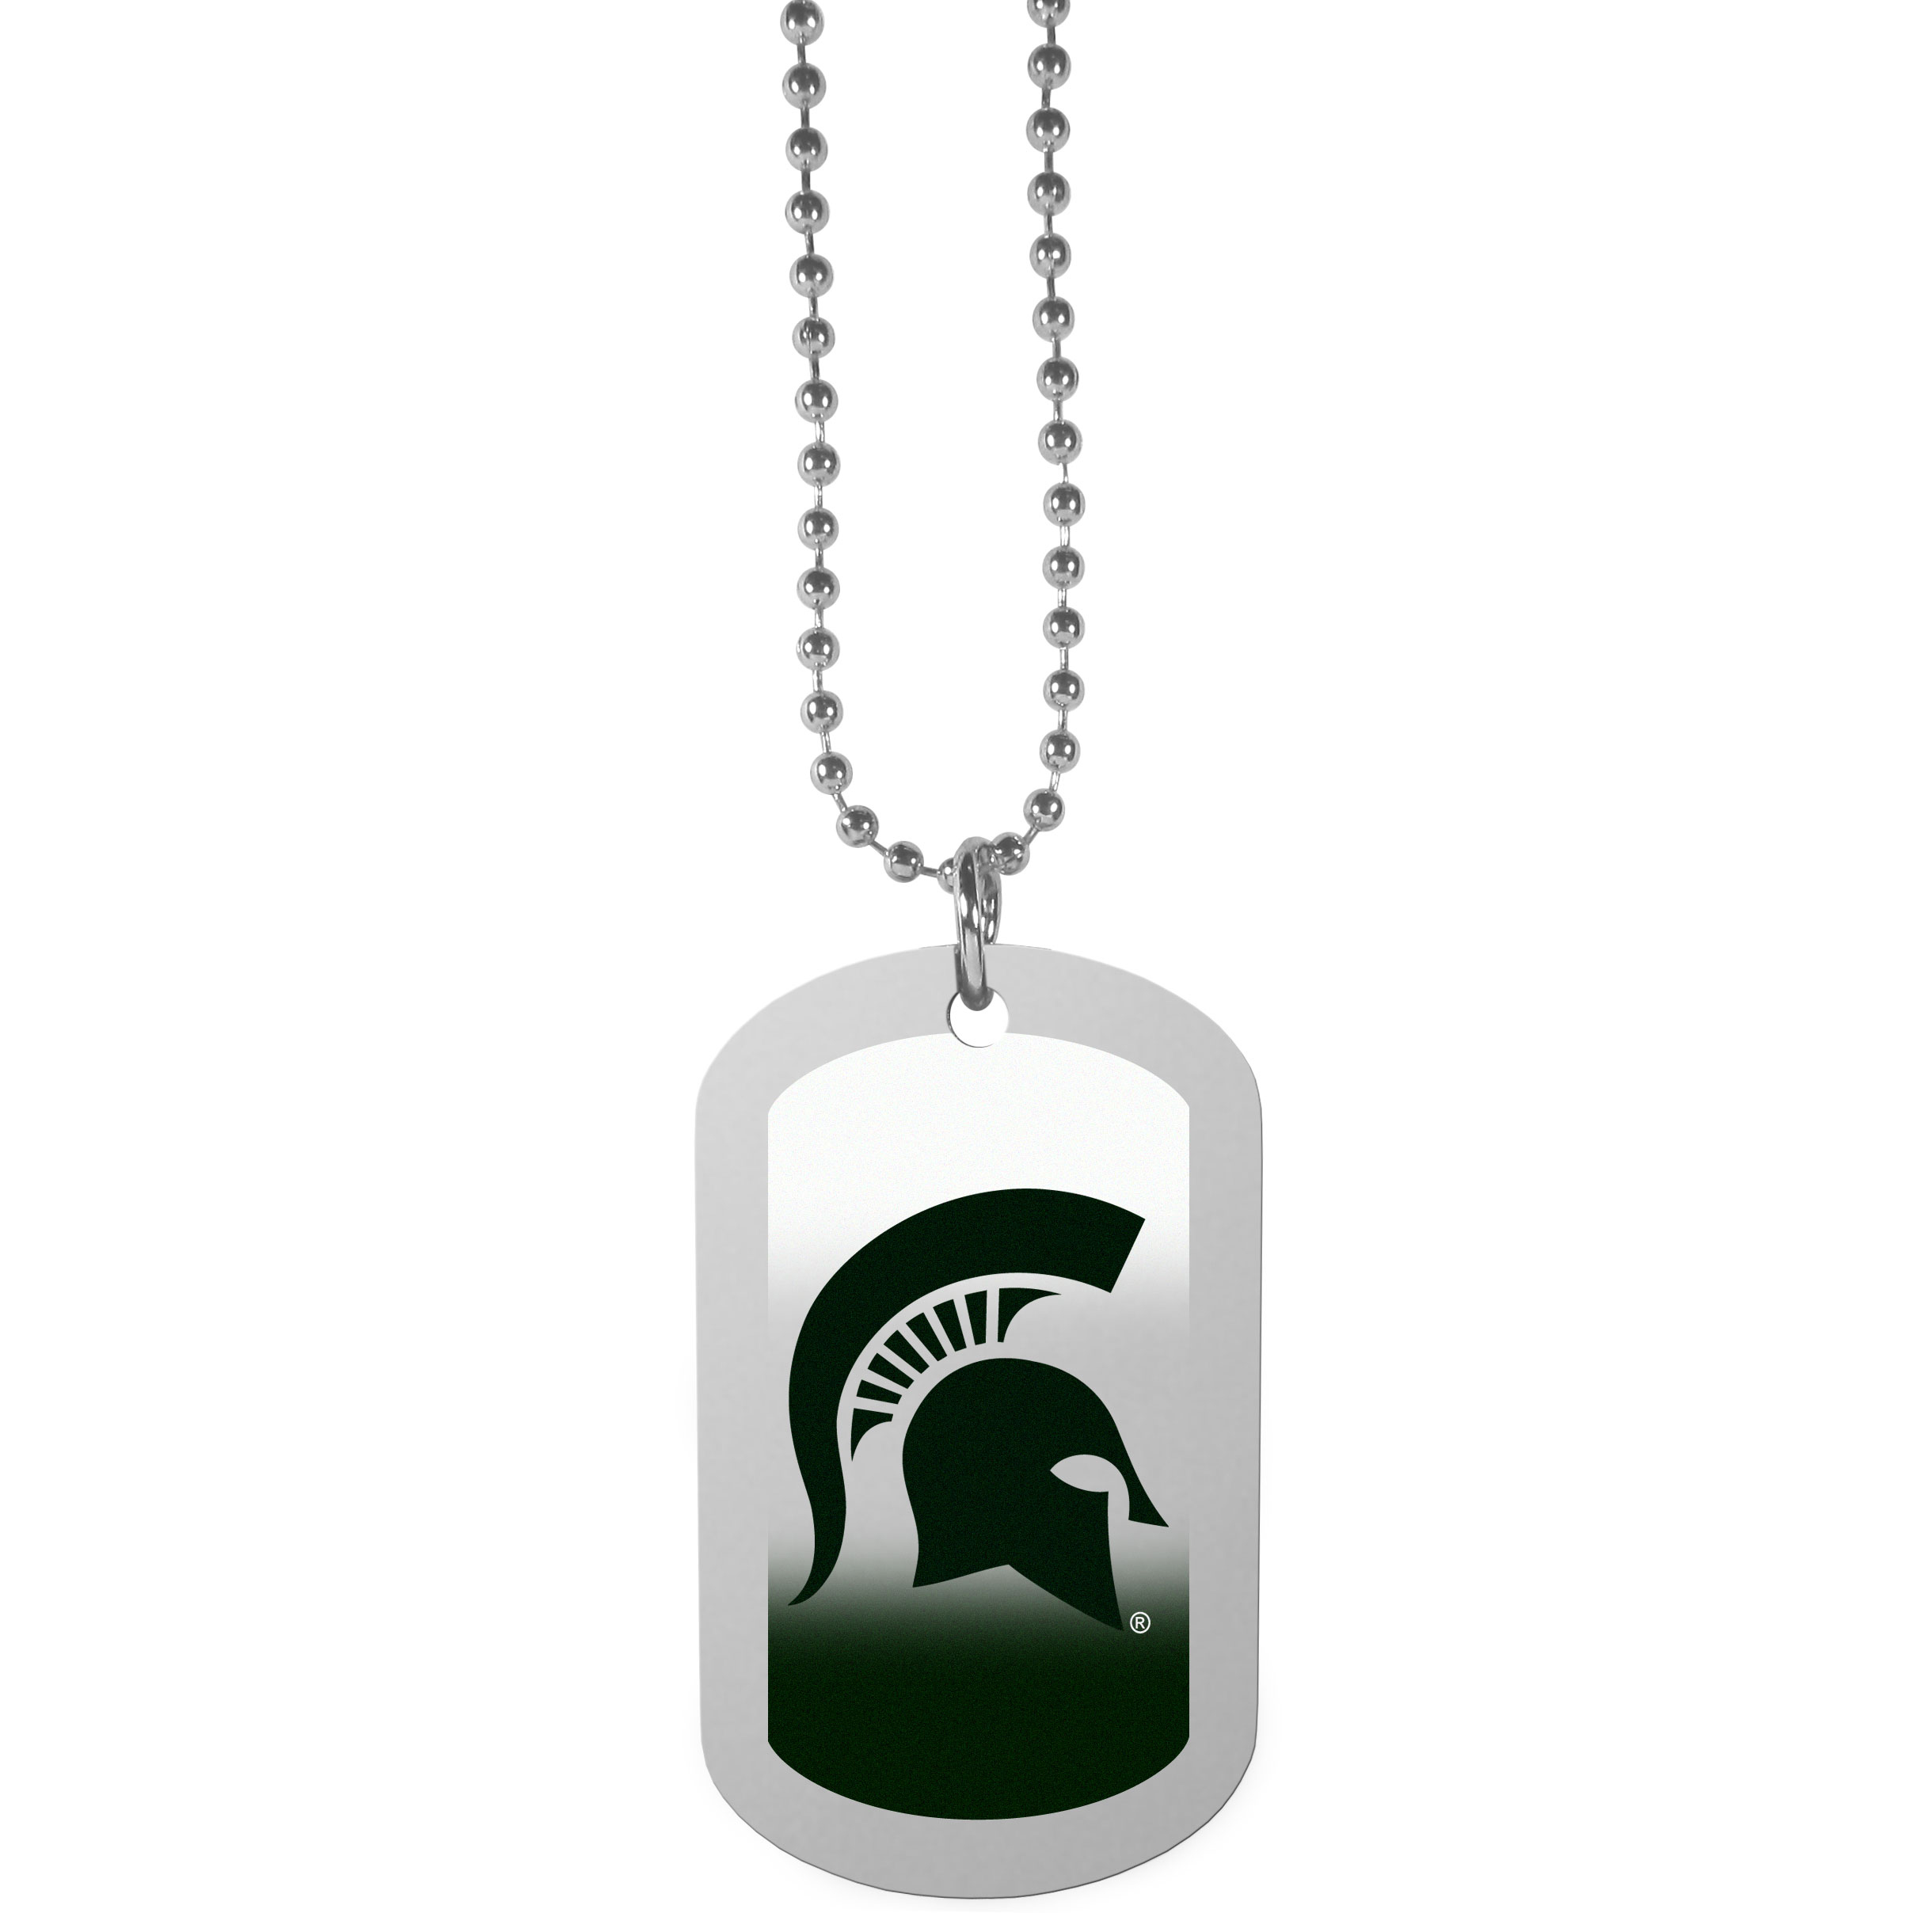 Michigan St. Spartans Team Tag Necklace - Dog tag necklaces are a fashion statement that is here to stay. The sporty version of the classic tag features a gradient print in team colors featuring a full color team logo over a high polish tag to create a bold and sporty look. The tag comes on a 26 inch ball chain with a ball and joint clasp. Any Michigan St. Spartans would be proud to wear this attractive fashion accessory.